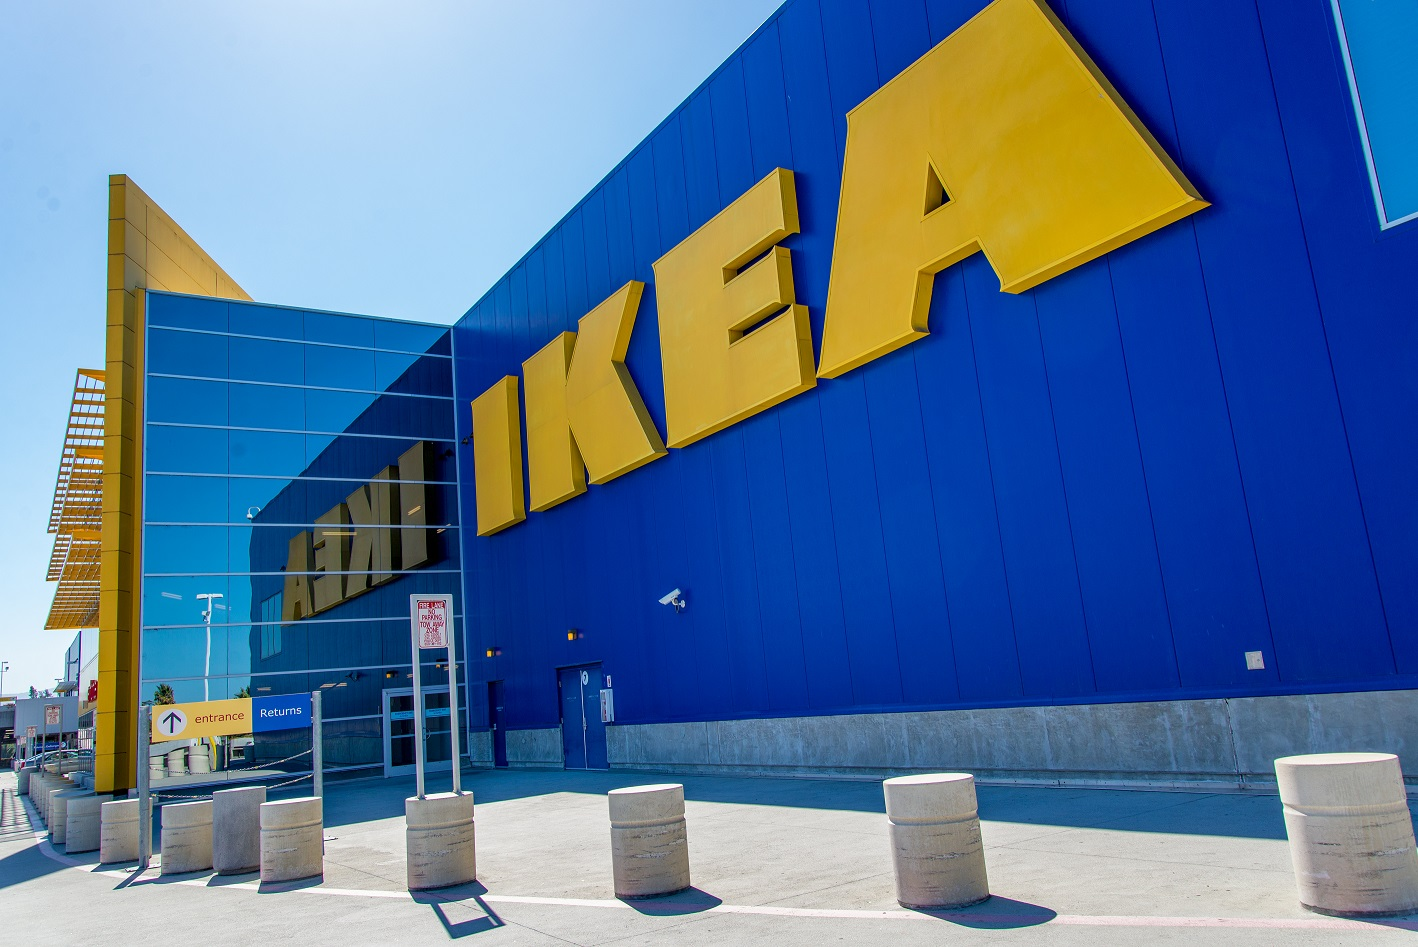 IKEA Provides Free Anchoring Kit as a Safety Precaution